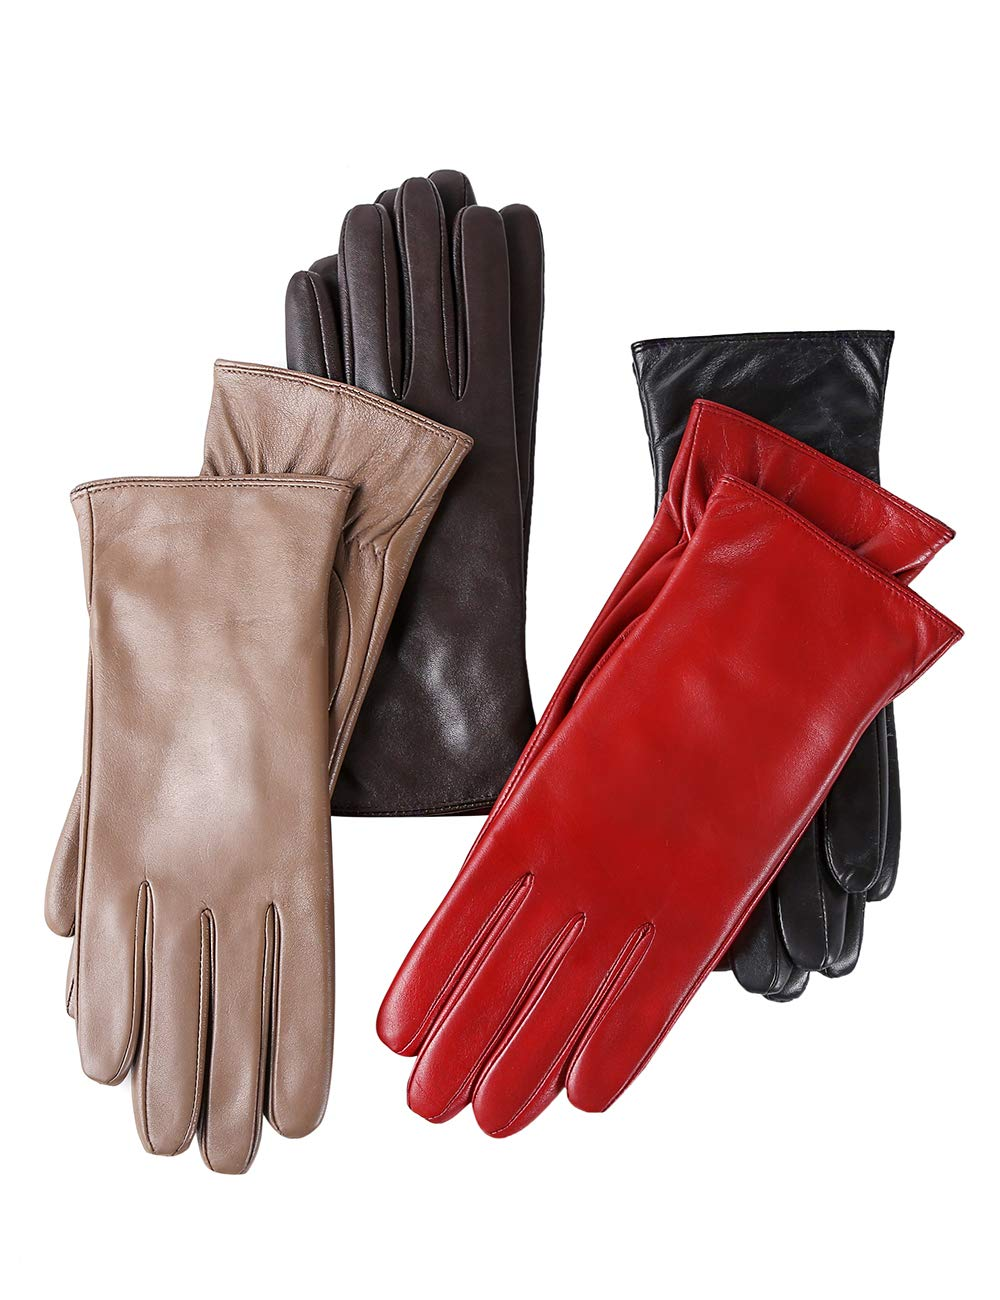 Super-soft Leather Winter Gloves for Women Full-Hand Touchscreen Warm 100% Cashmere Lined Perfect Appearance PAITE PTW001-009